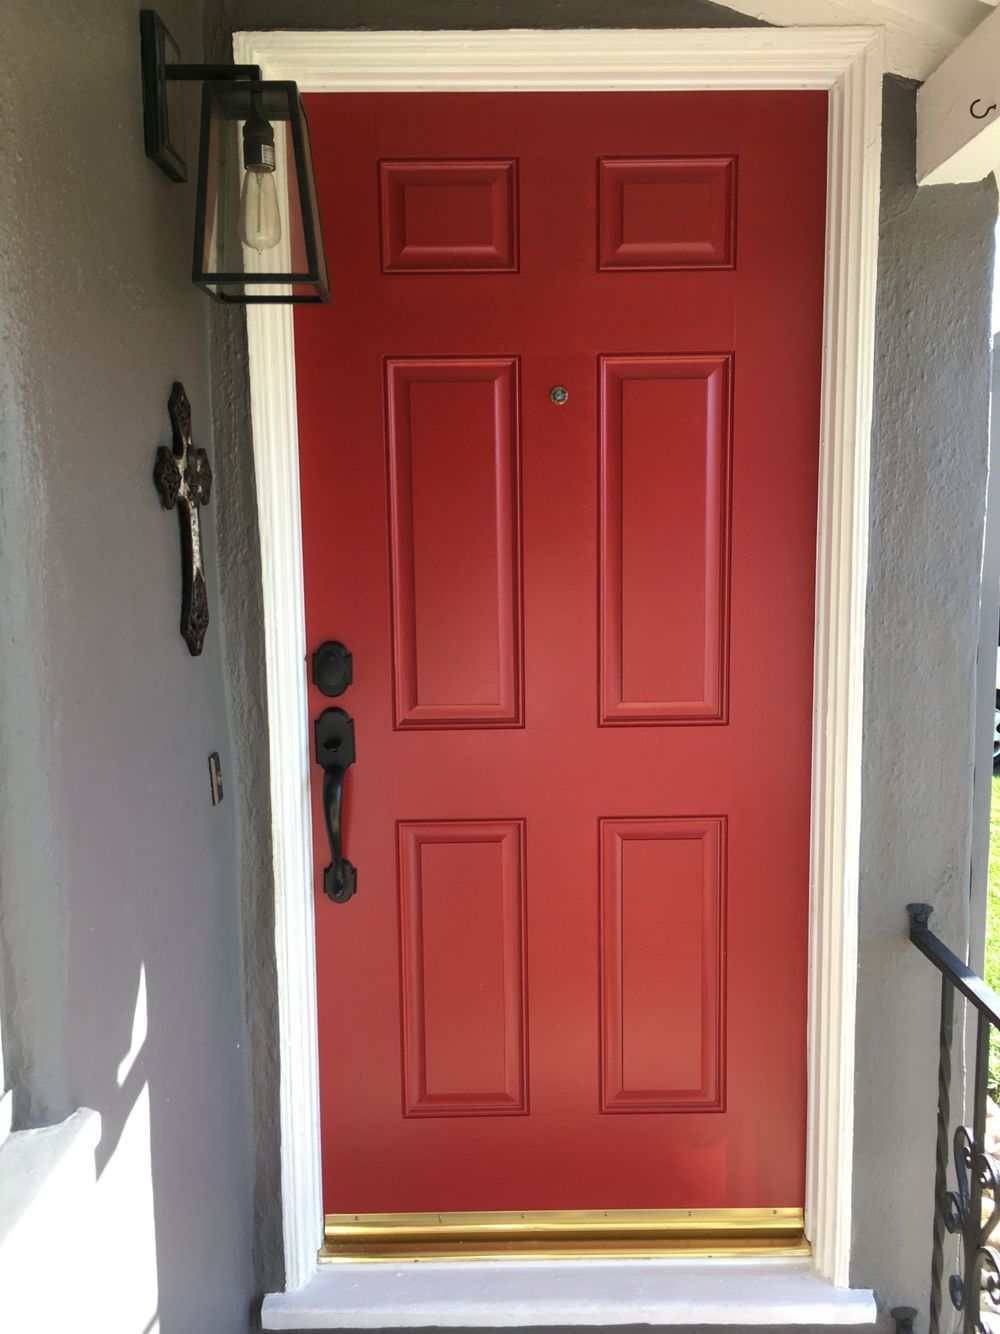 My Red Door Exterior Benjamin Moore Caliente Af 290 Hot Pionate And Y This Is One Of Our Most Beloved Reds With A Hint Orange